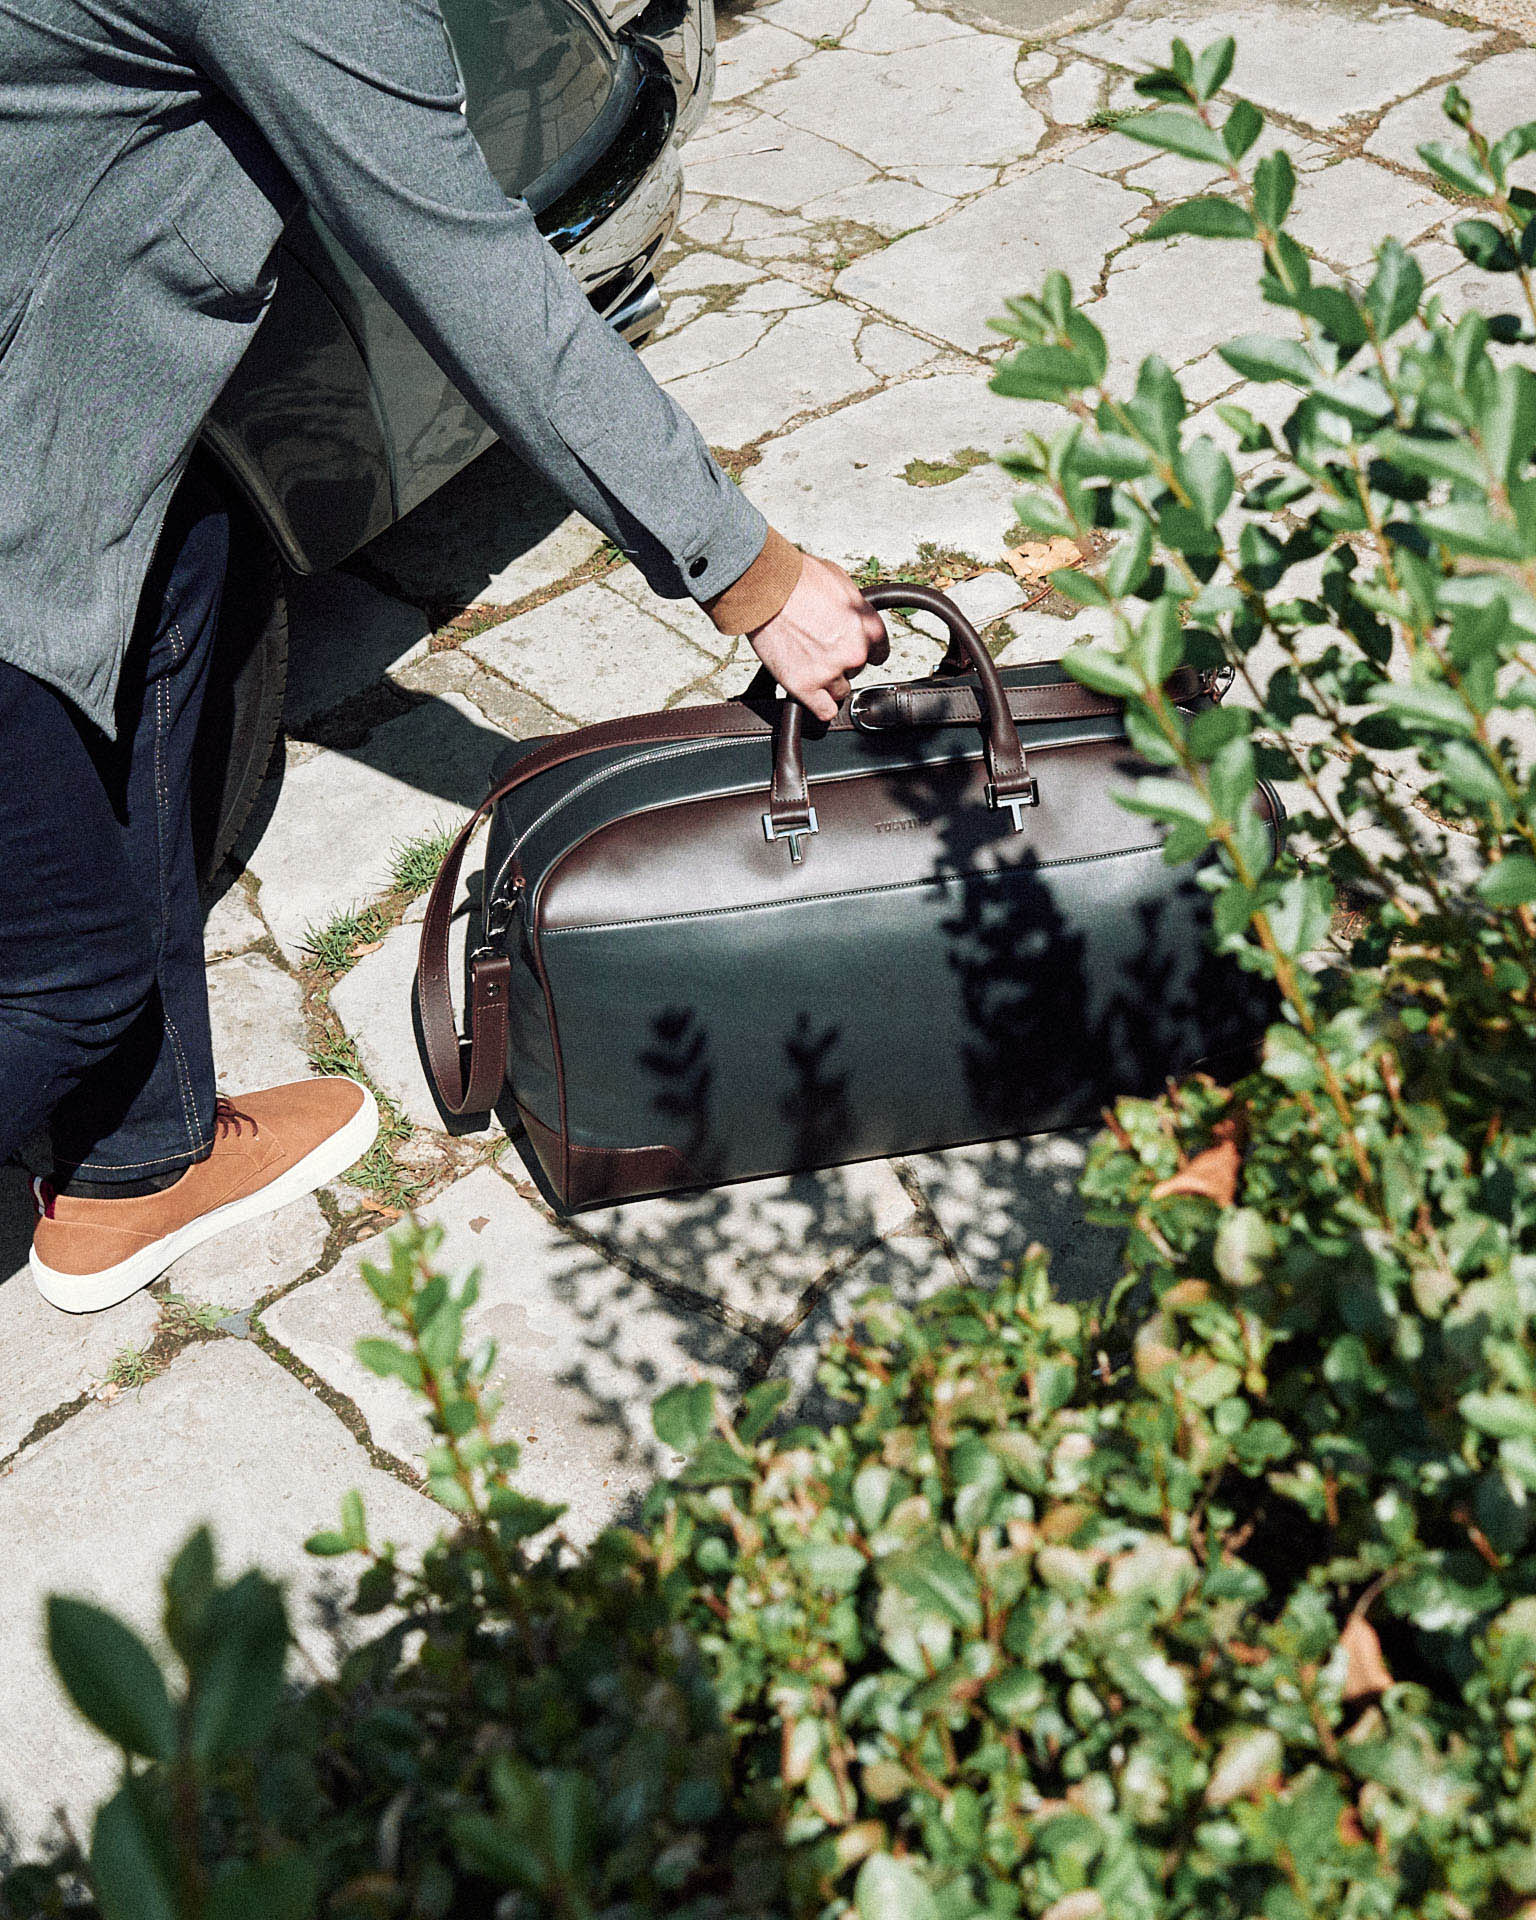 Tusting  leather holdall  by lifestyle photographer Tim Cole